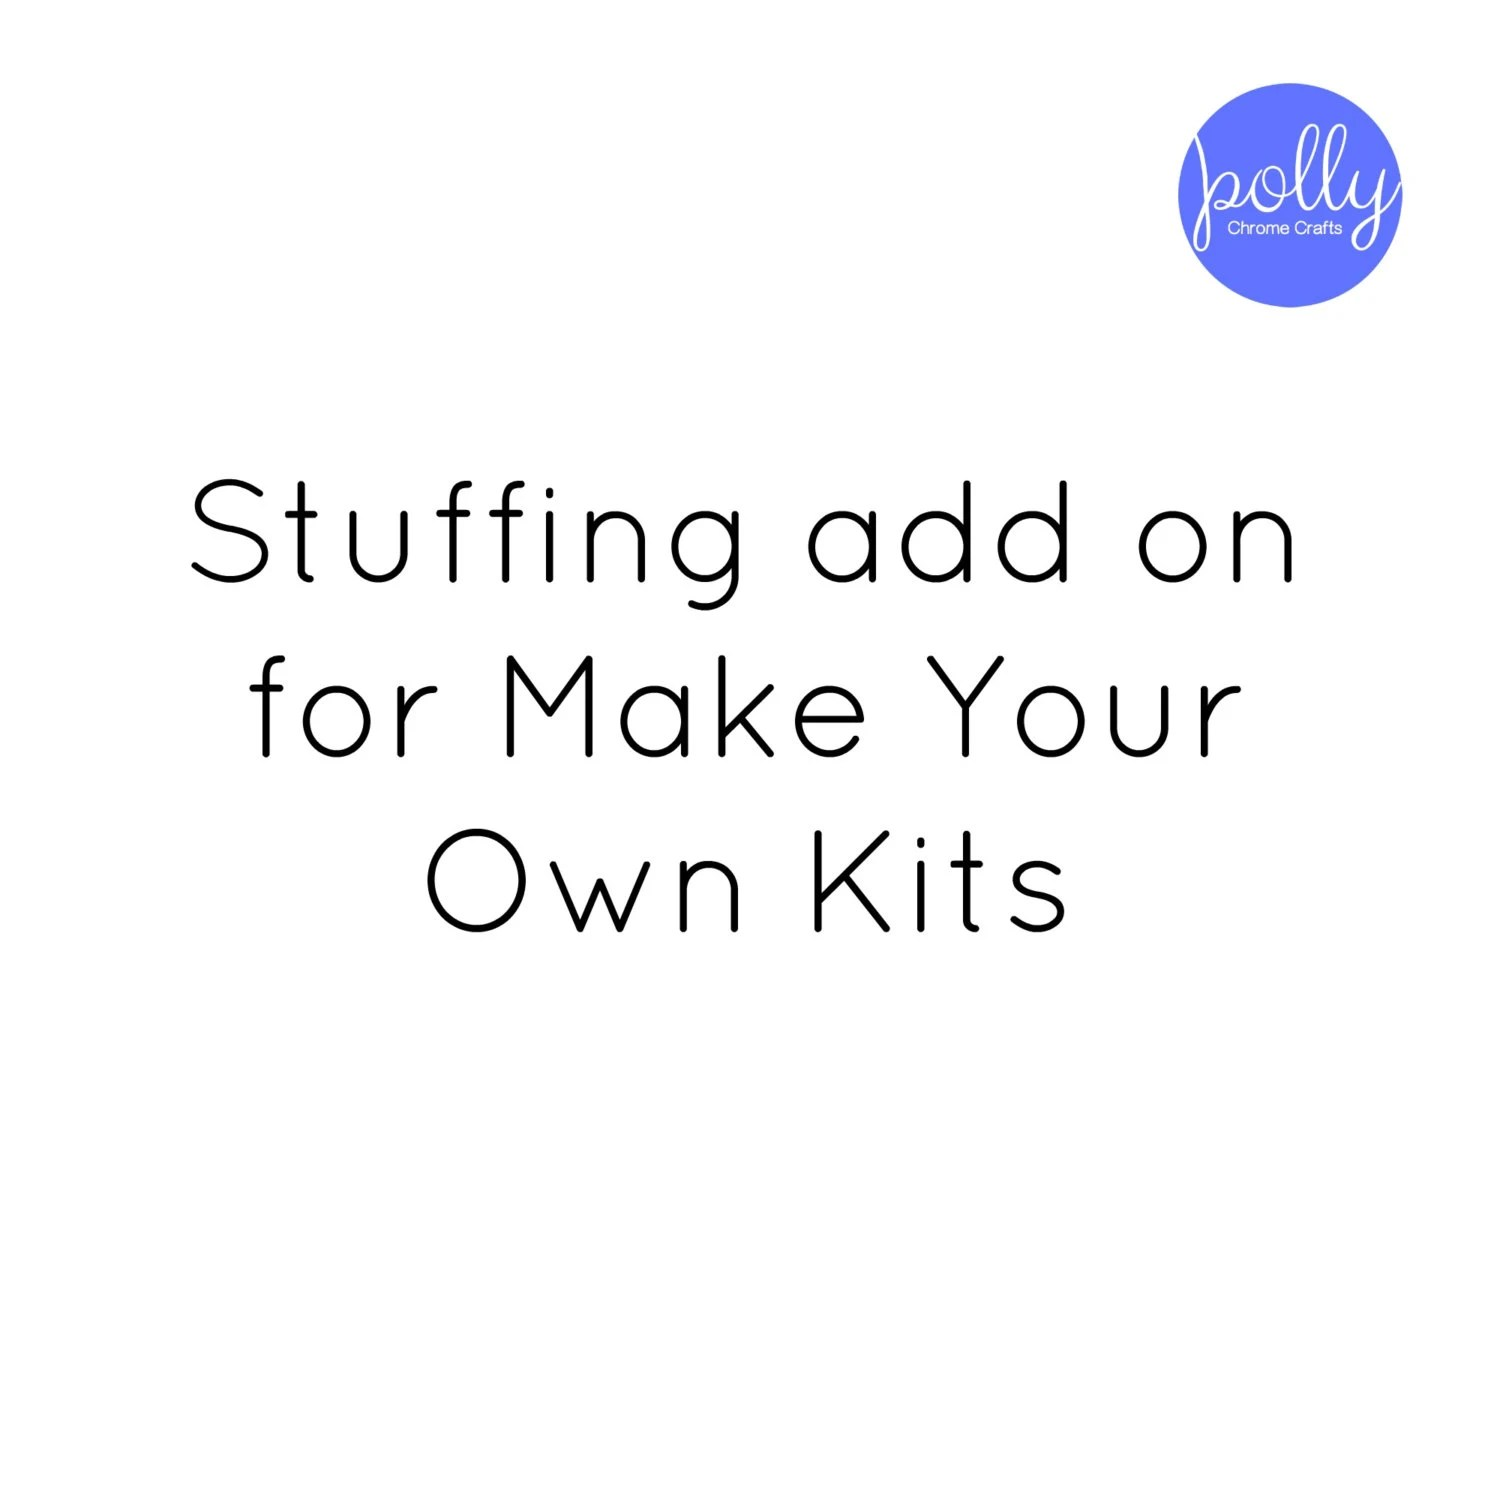 Stuffing Add On For Make Your Own Kits